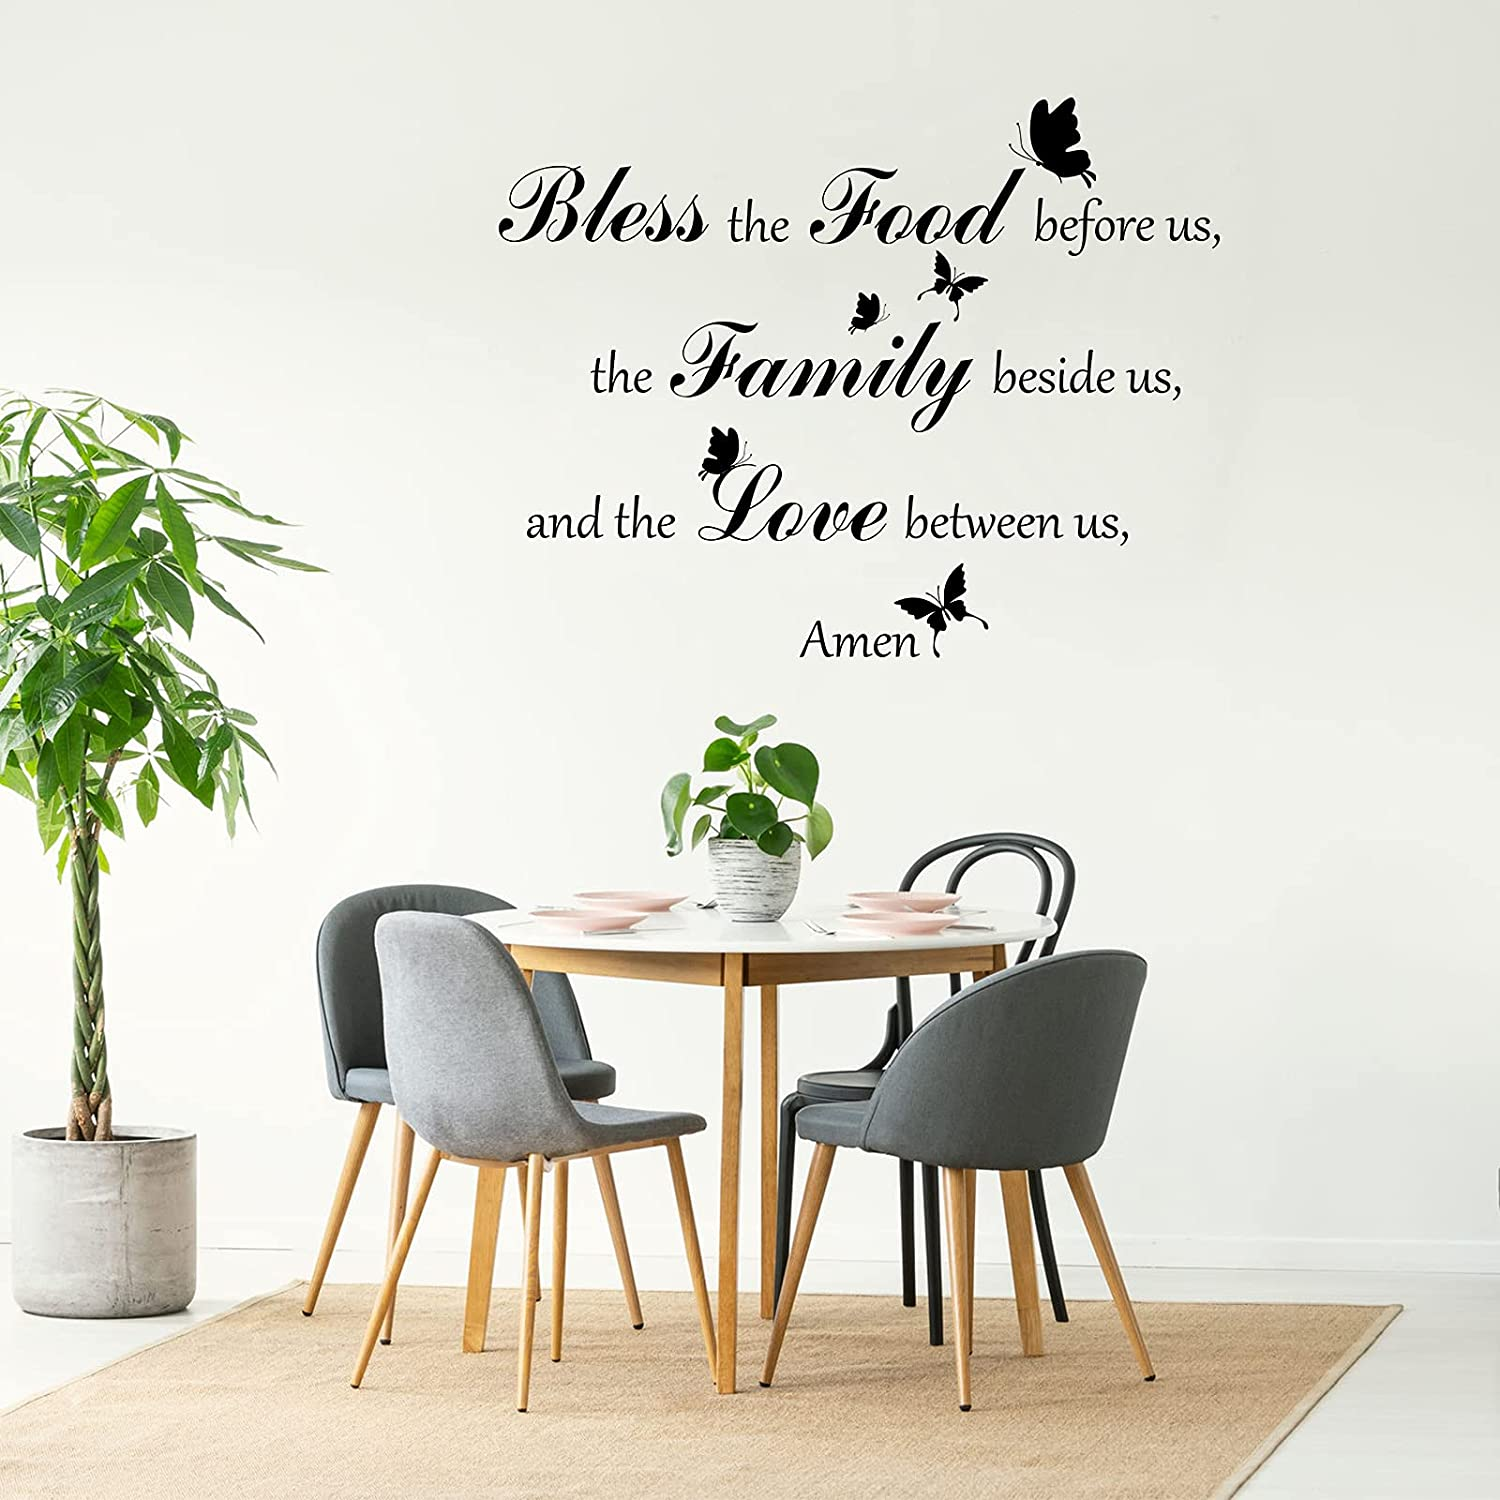 Dinner Prayer Wall Decor Lettering Vinyl Wall Decals Butterflies Bible Verse Wall Art Decors Bless The Food Before Us Wall Stickers for Living Room Kitchen Prayer Room Dining Room Home Decoration